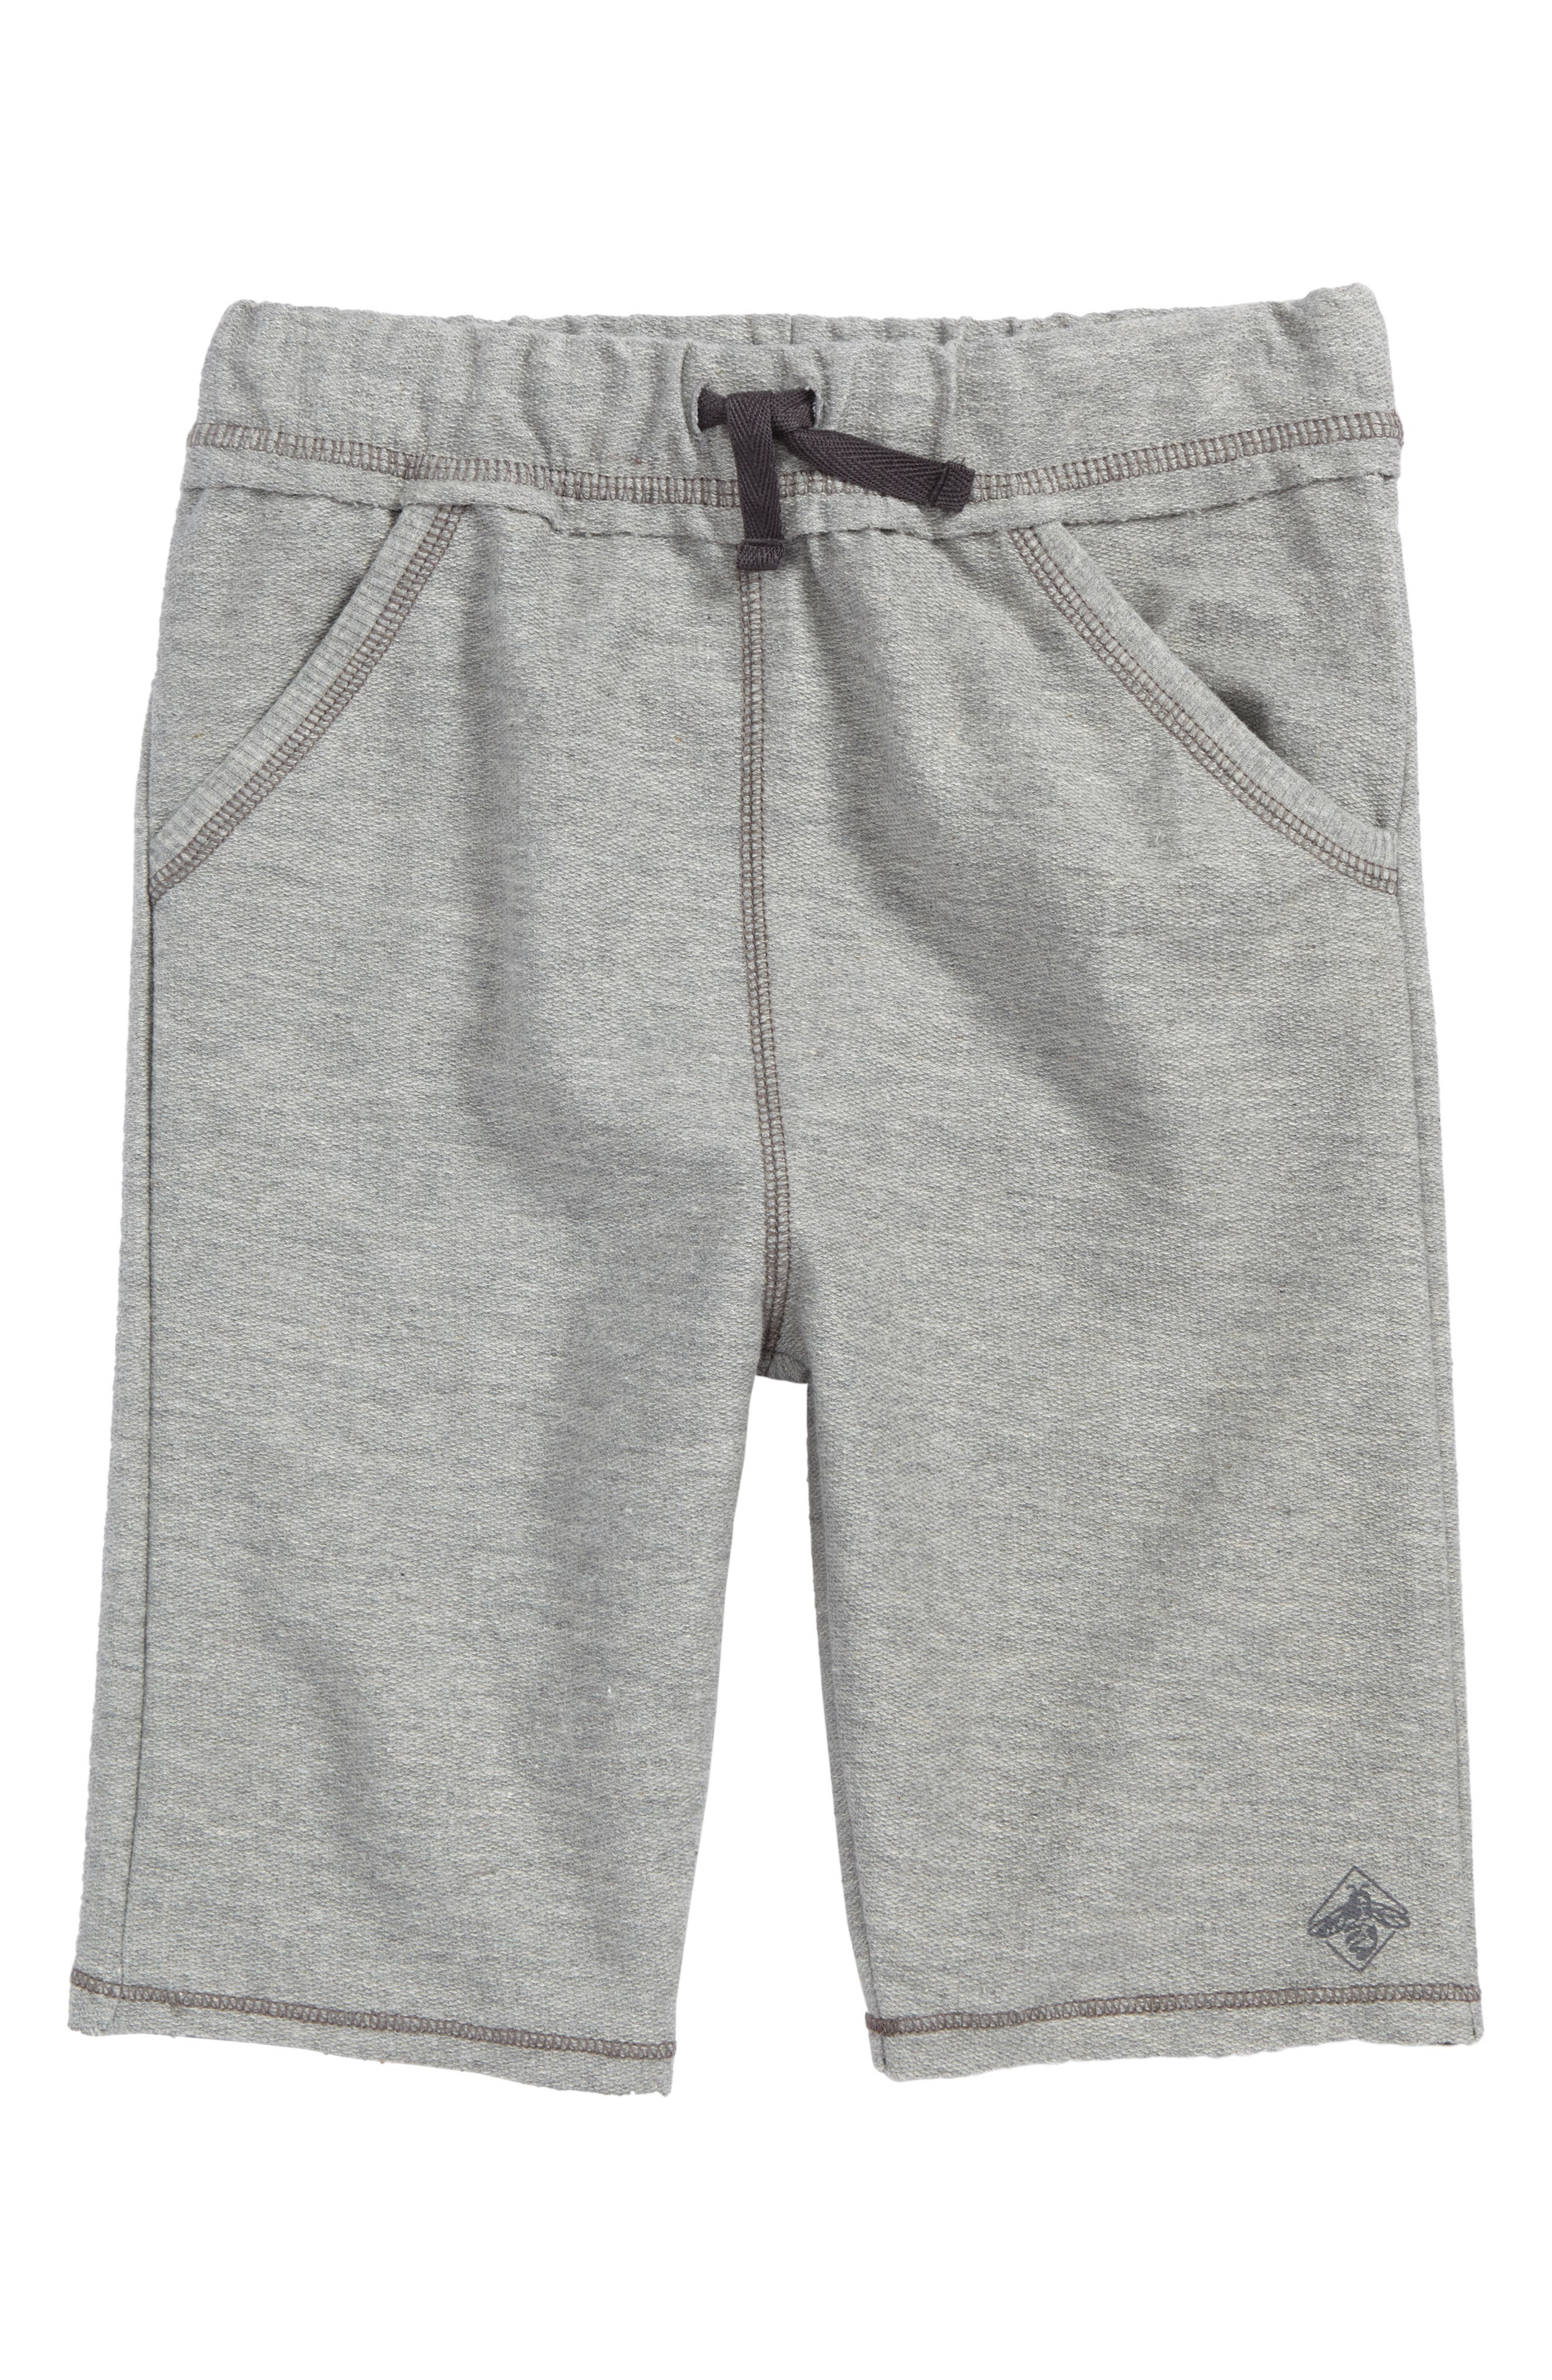 Main Image - Burt's Bees Baby Organic French Terry Cotton Sweatpants (Toddler Boys & Little Boys)